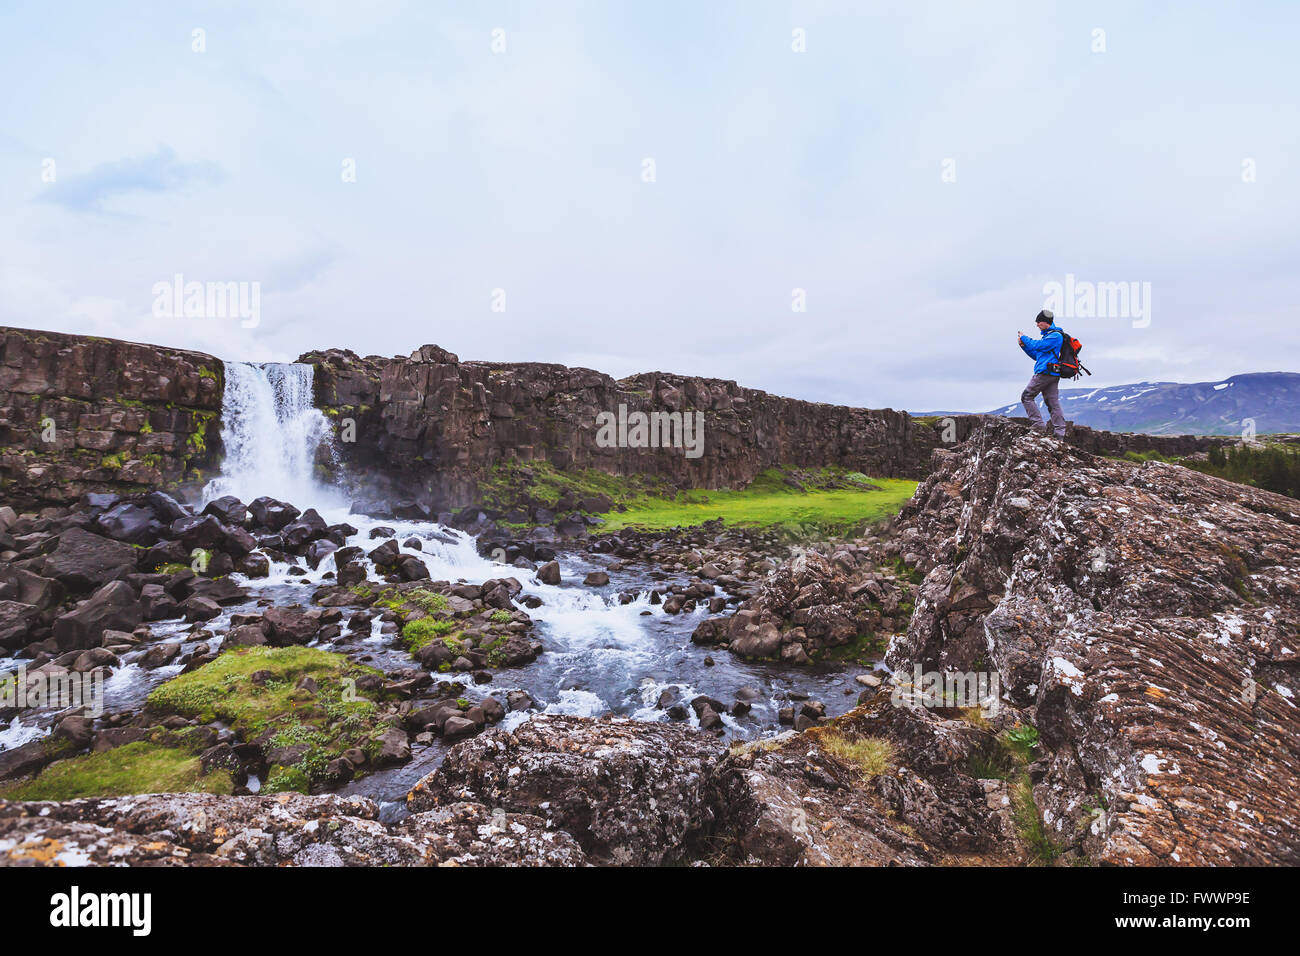 backpacker traveler taking photo of waterfall with mobile phone - Stock Image